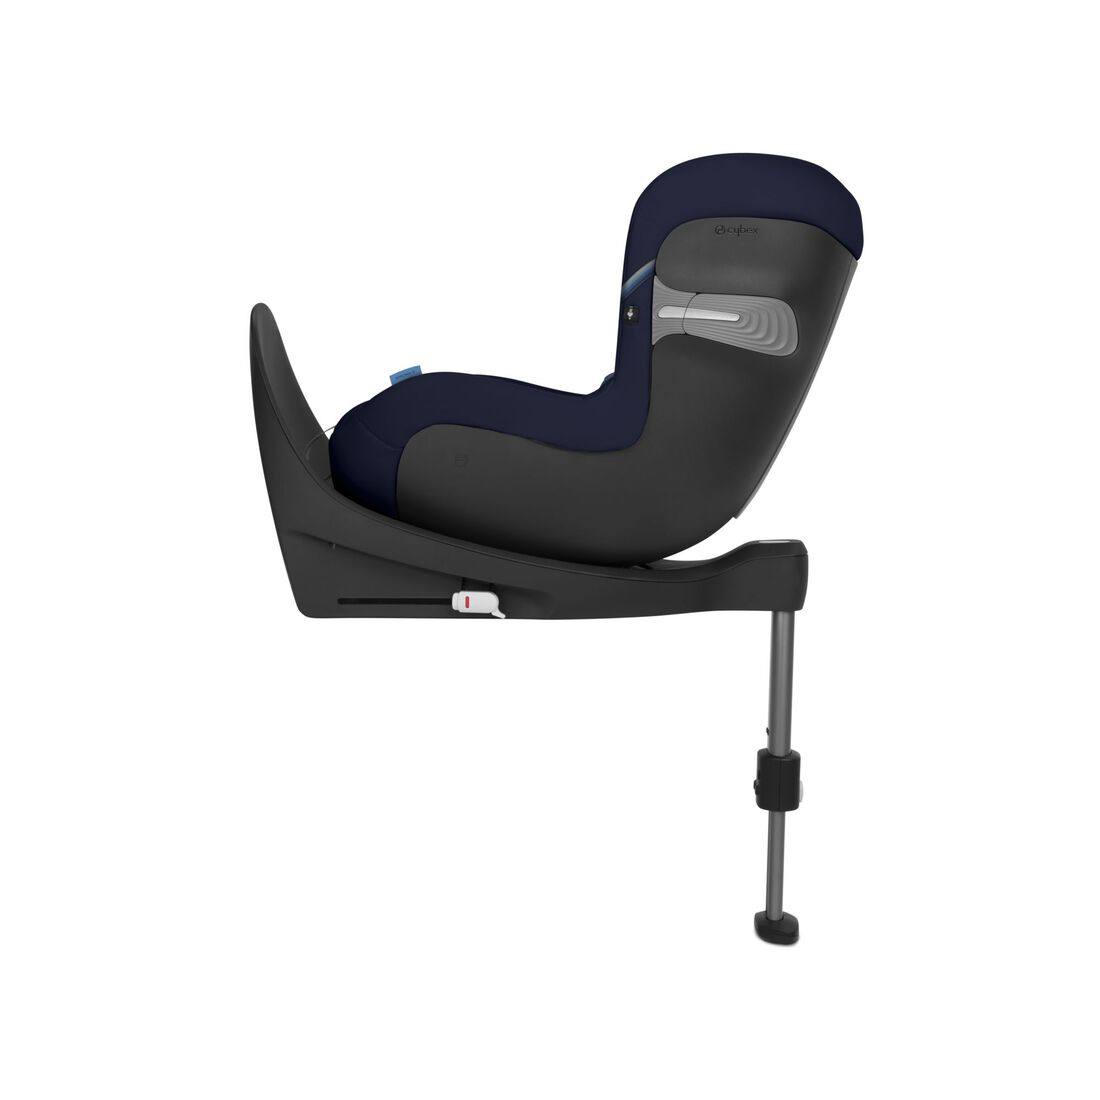 CYBEX Sirona S i-Size - Navy Blue in Navy Blue large image number 2